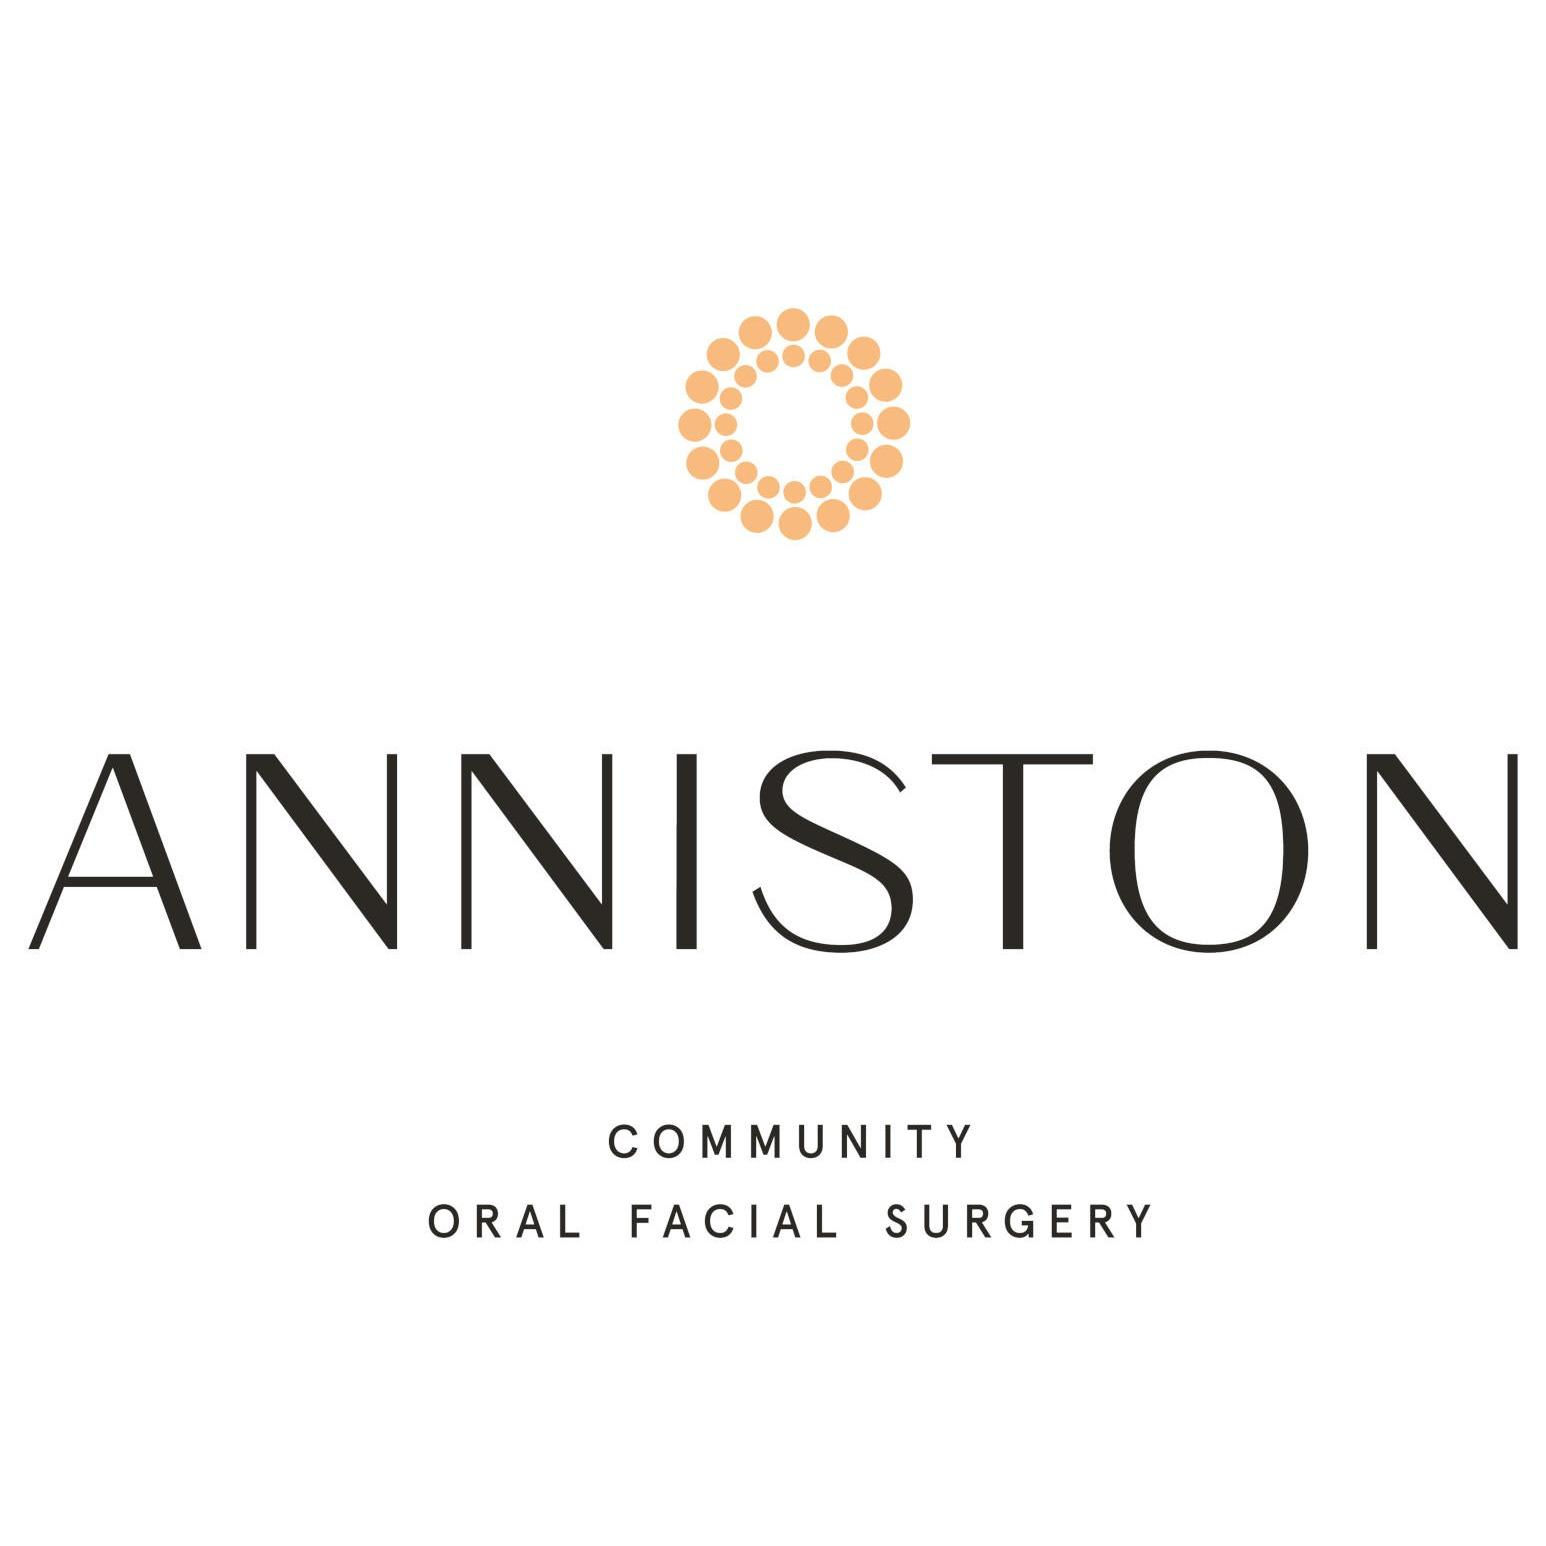 Anniston Oral Facial Surgery